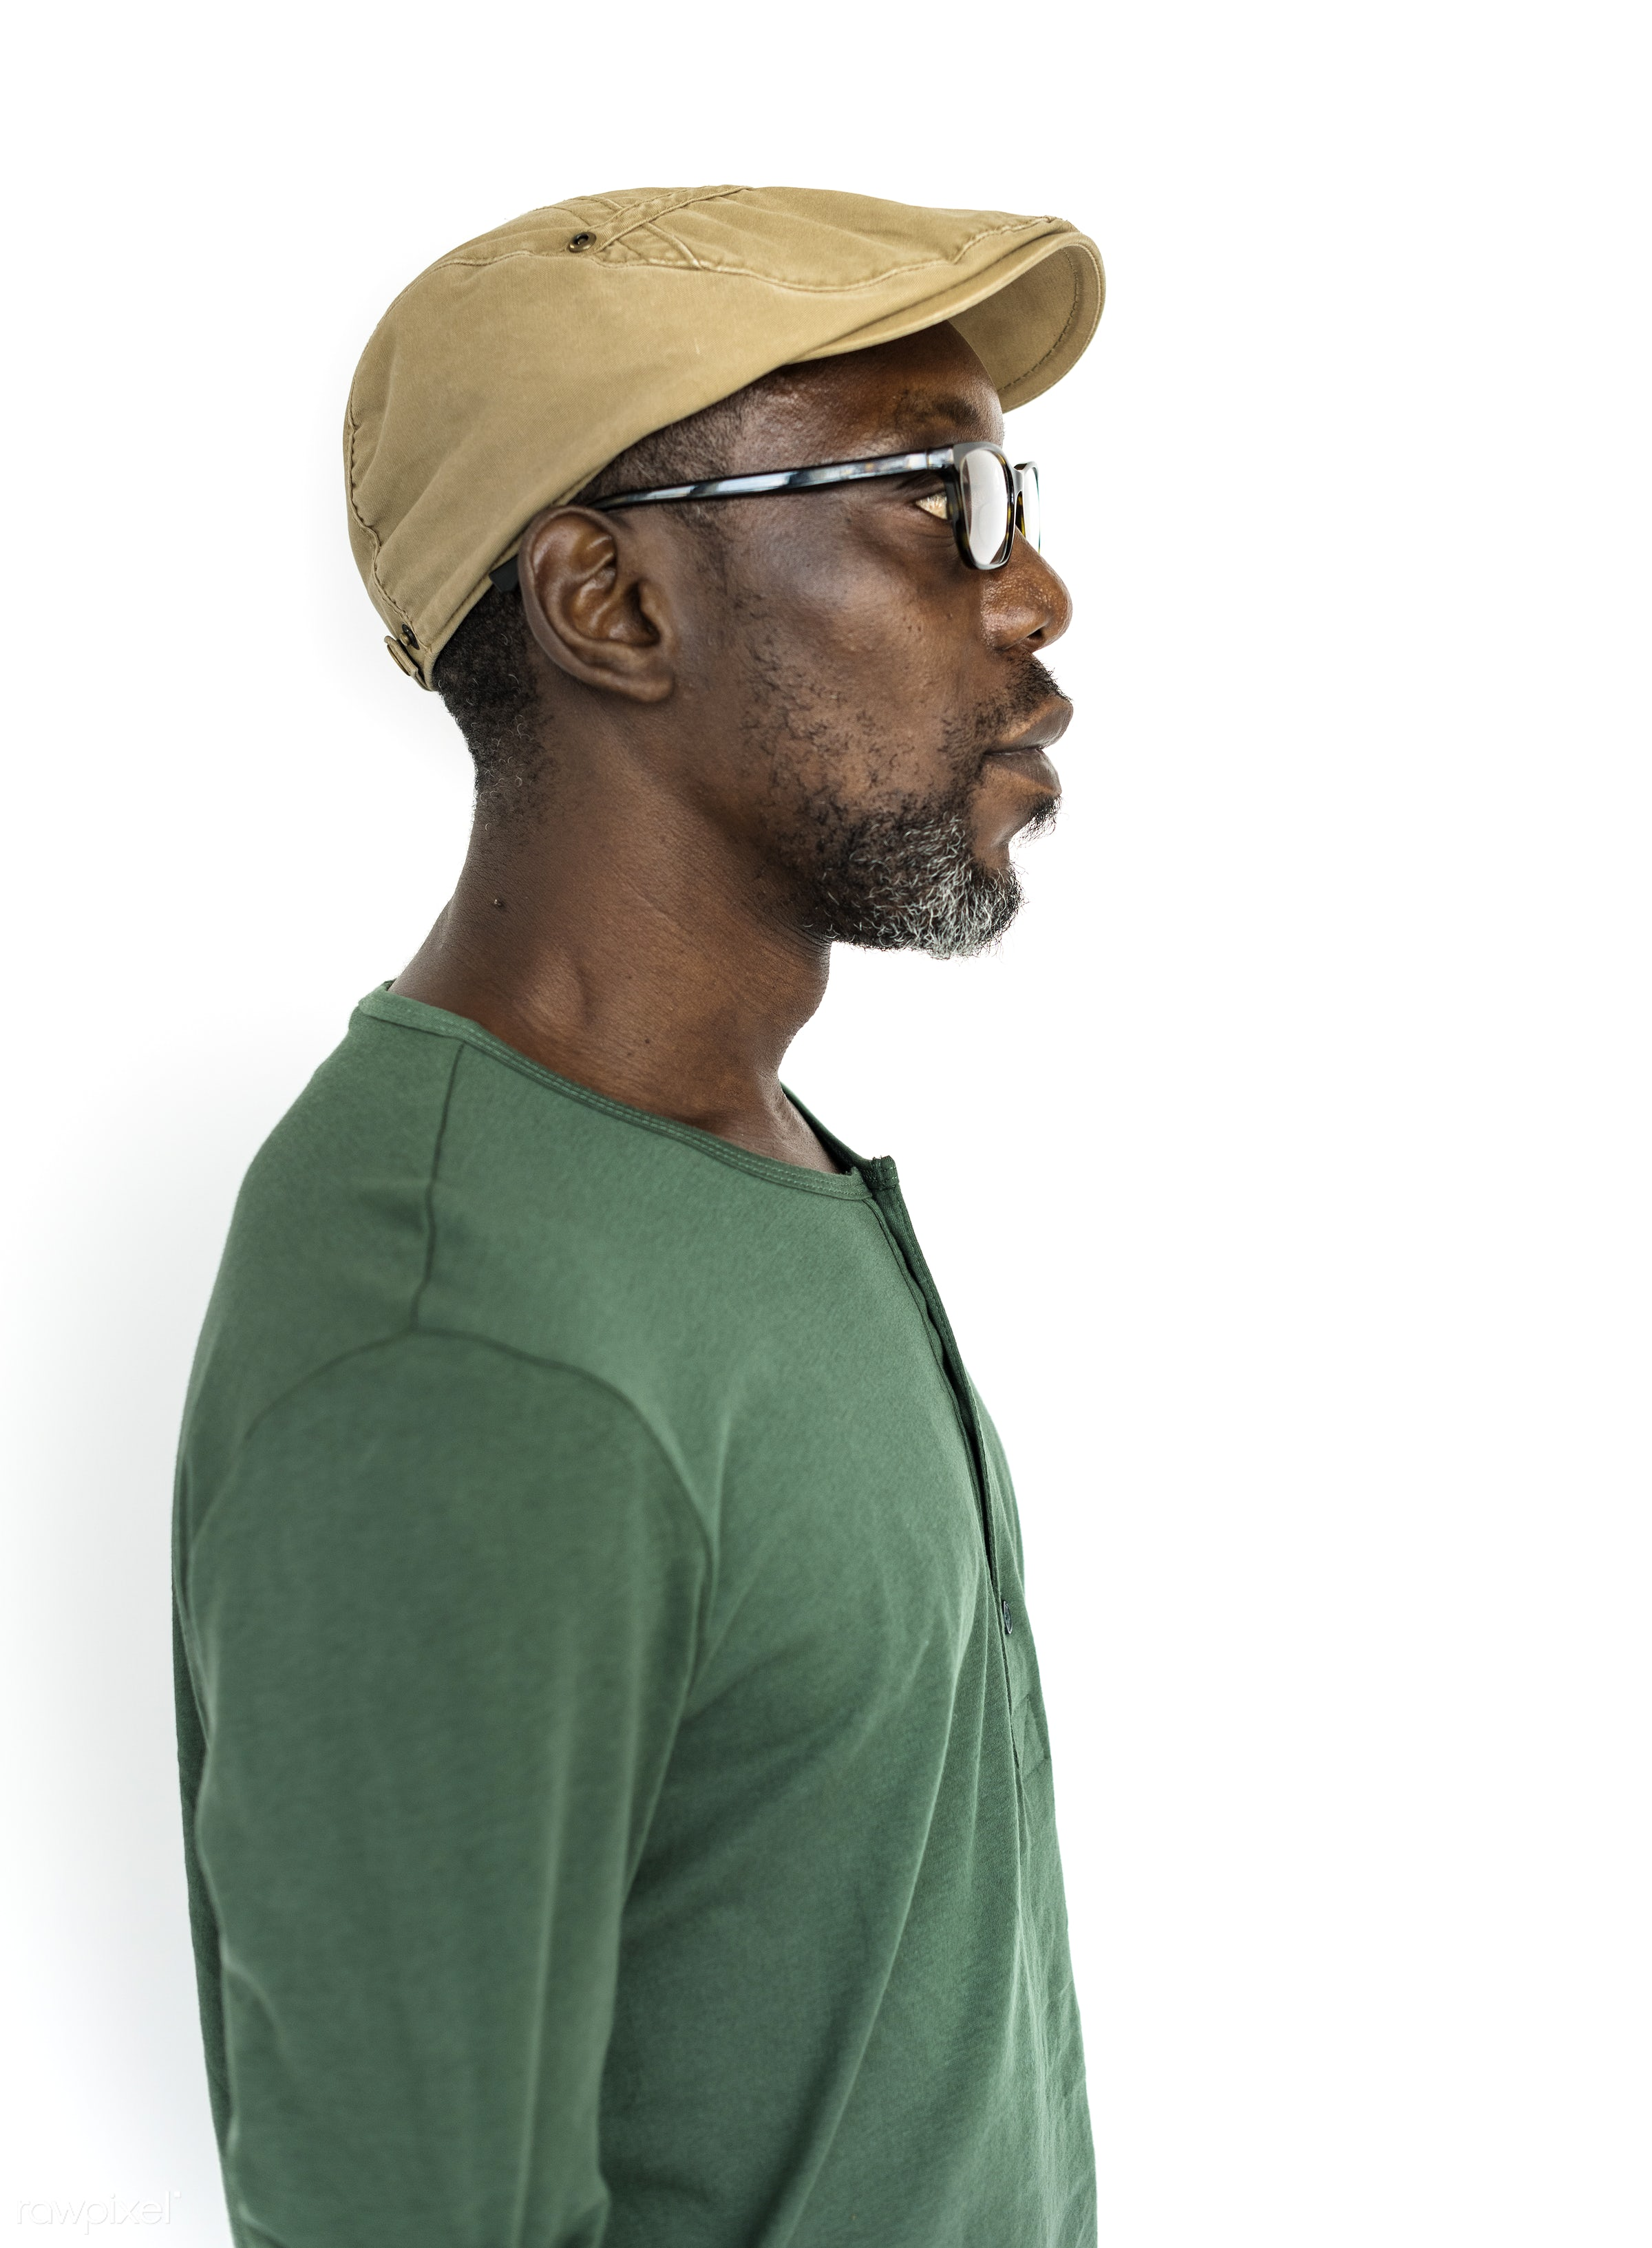 expression, studio, face, golf cap, person, glasses, isolated on white, people, casual, man, isolated, male, white, white...